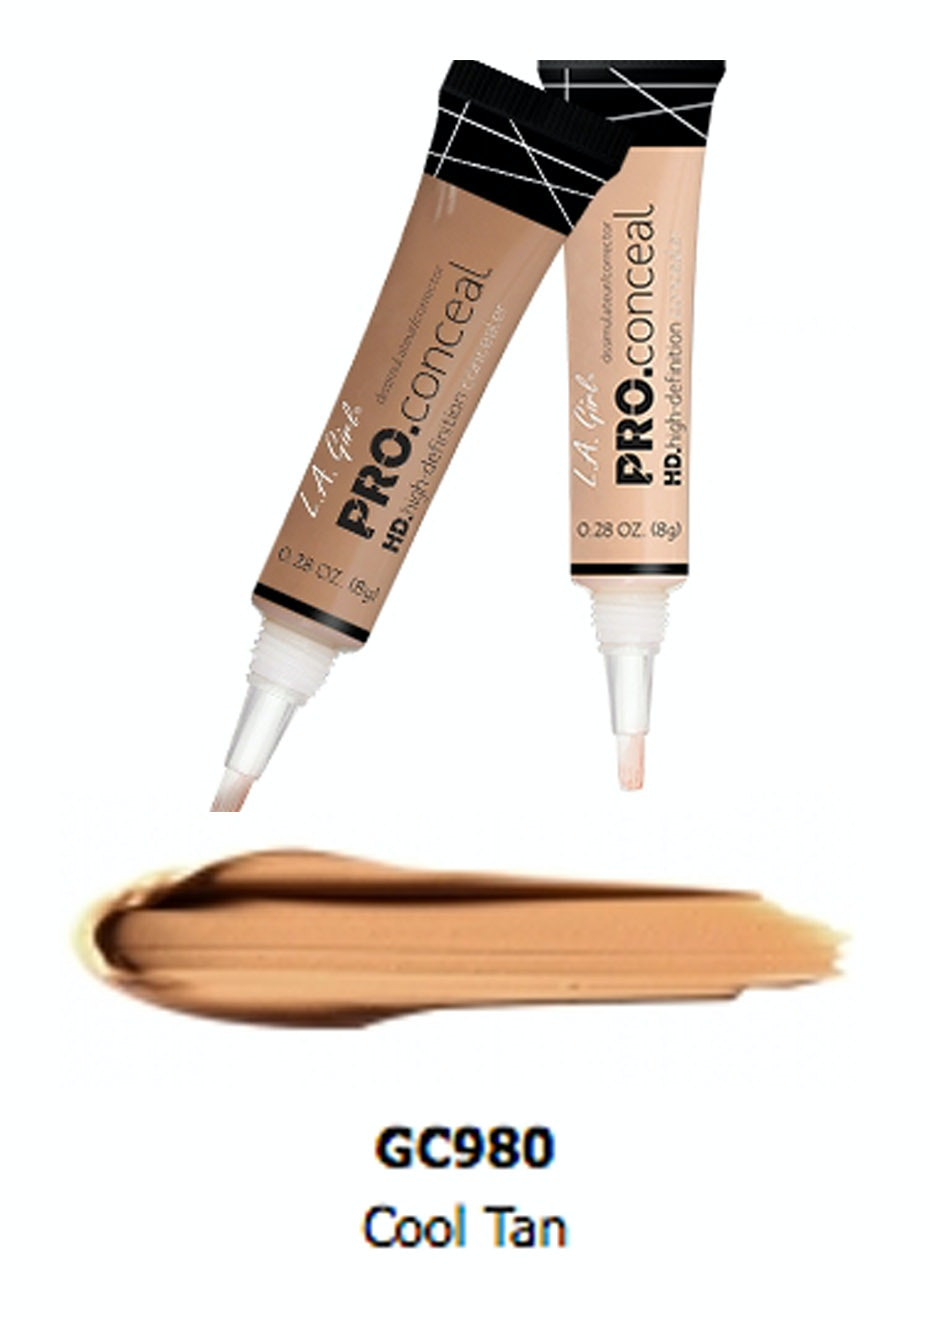 LA Girl Pro Concealer - Cool Tan